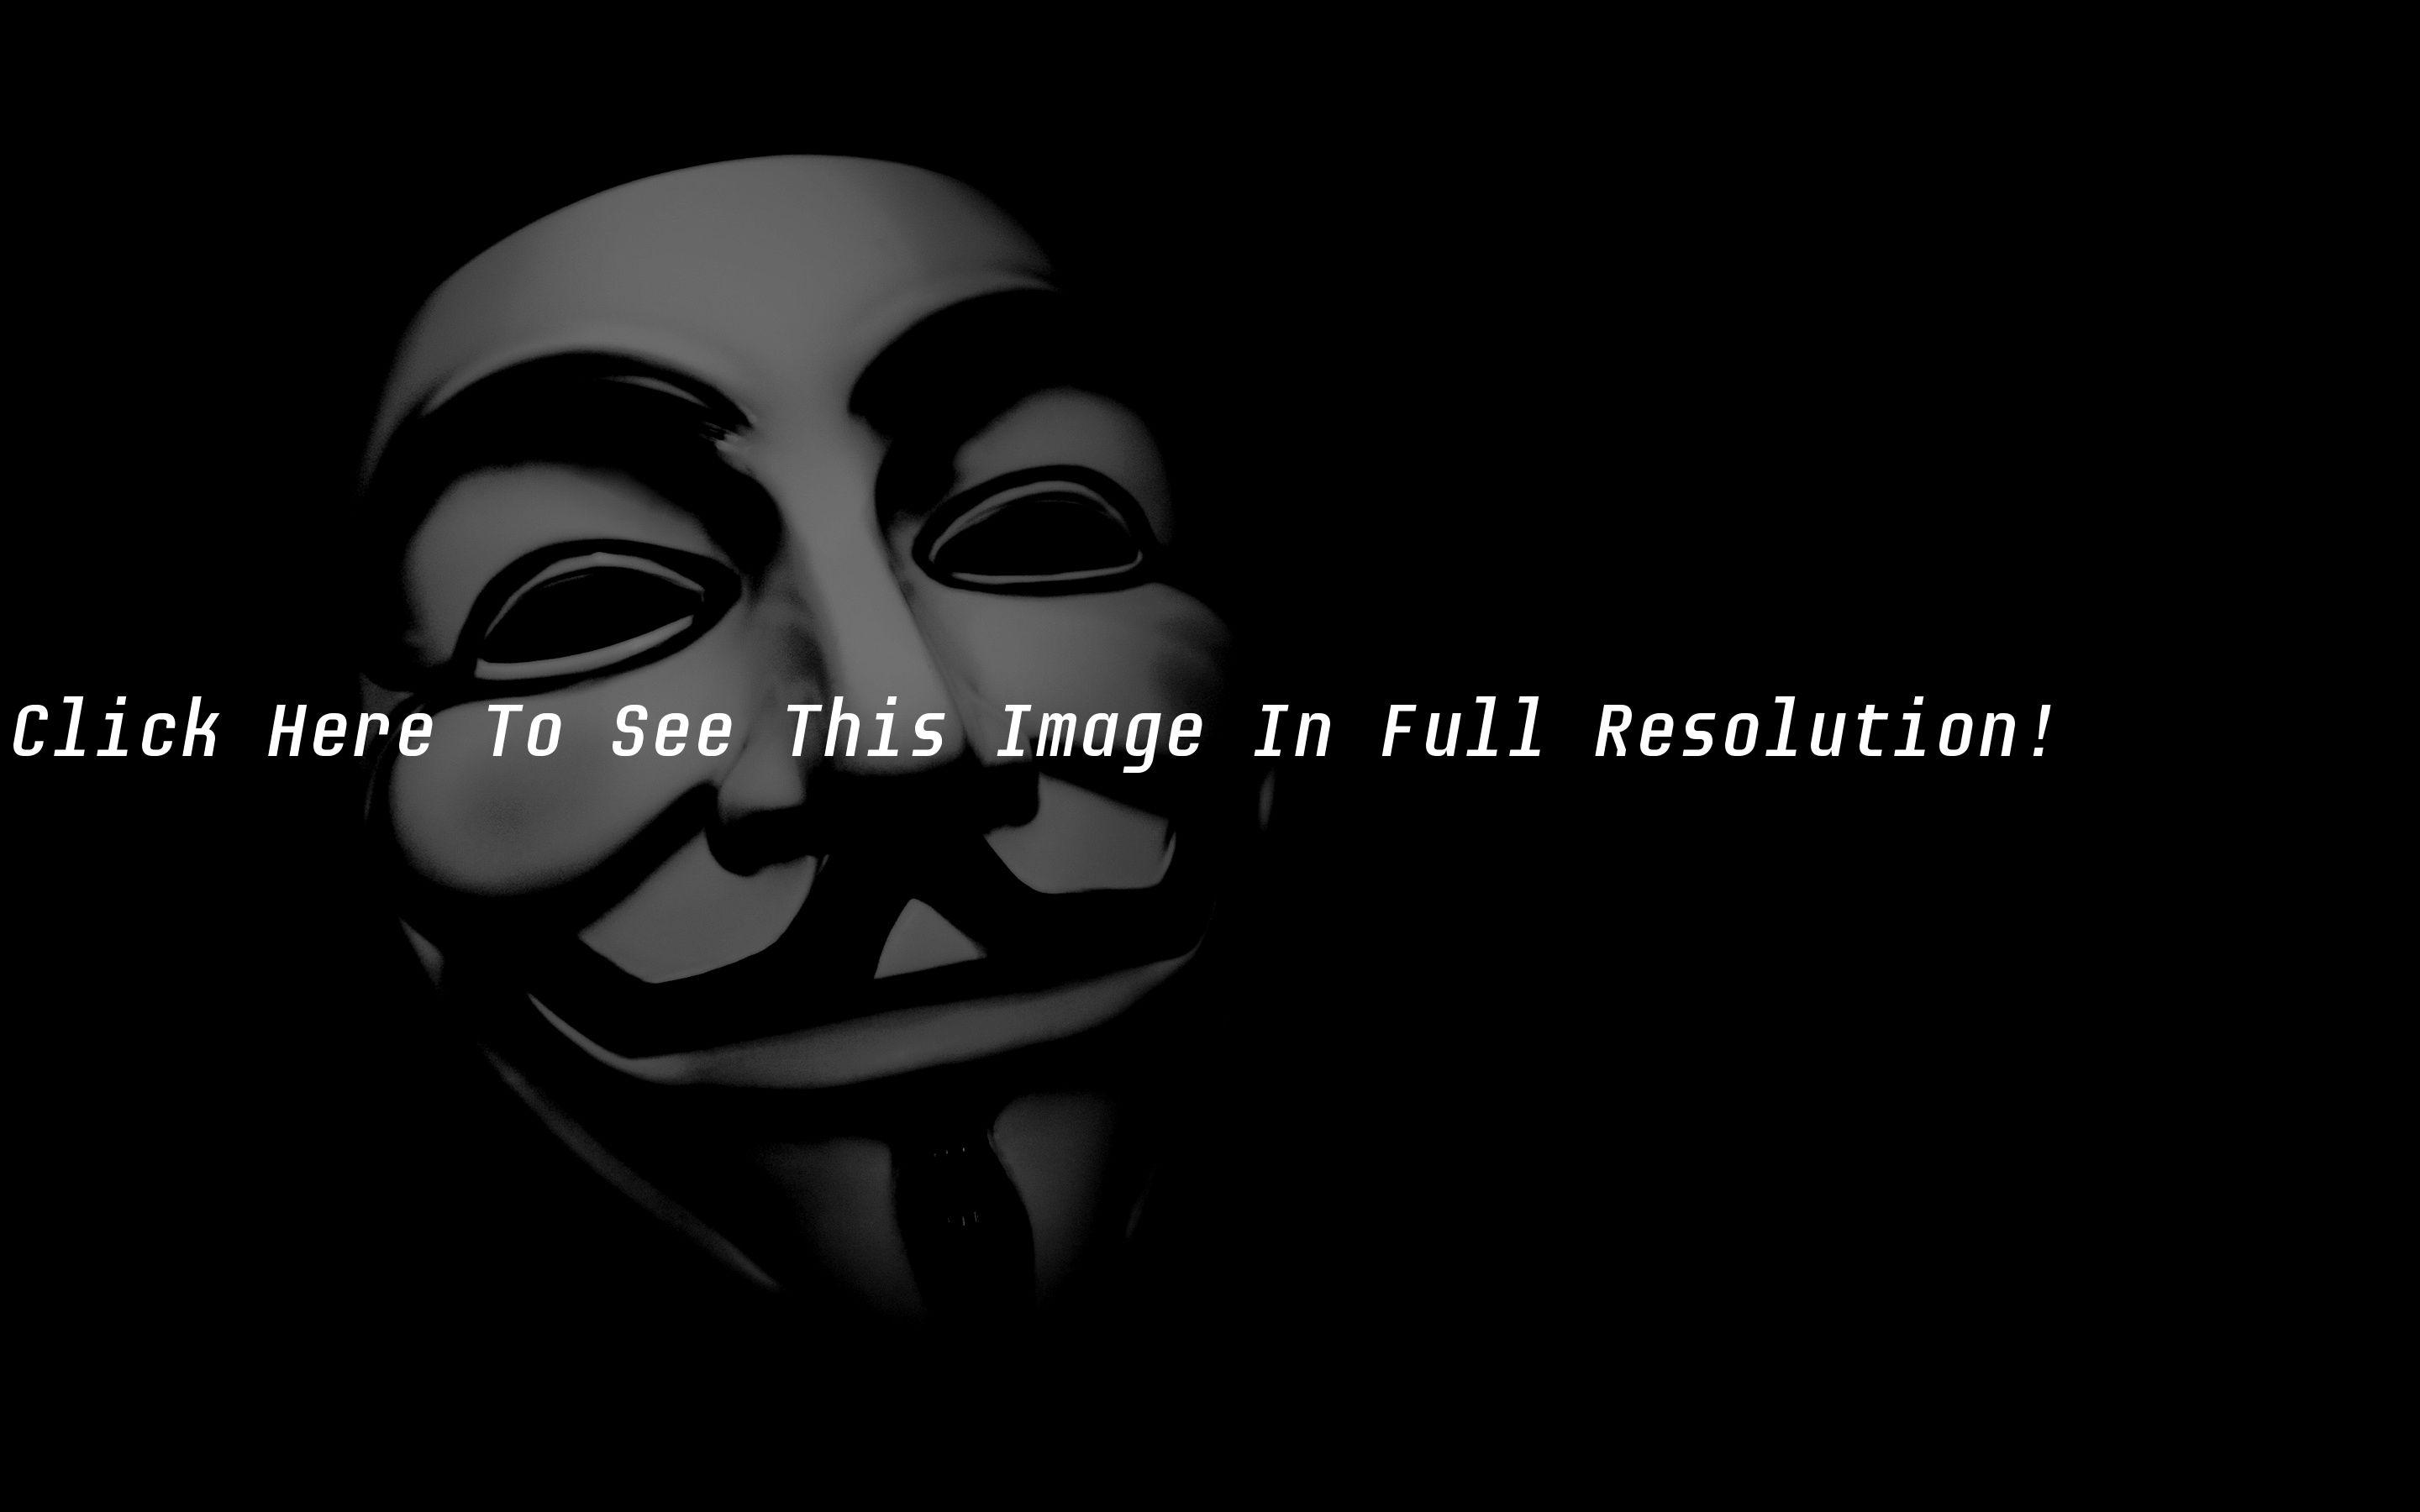 Vendetta Mask Wallpapers Wallpaper Cave